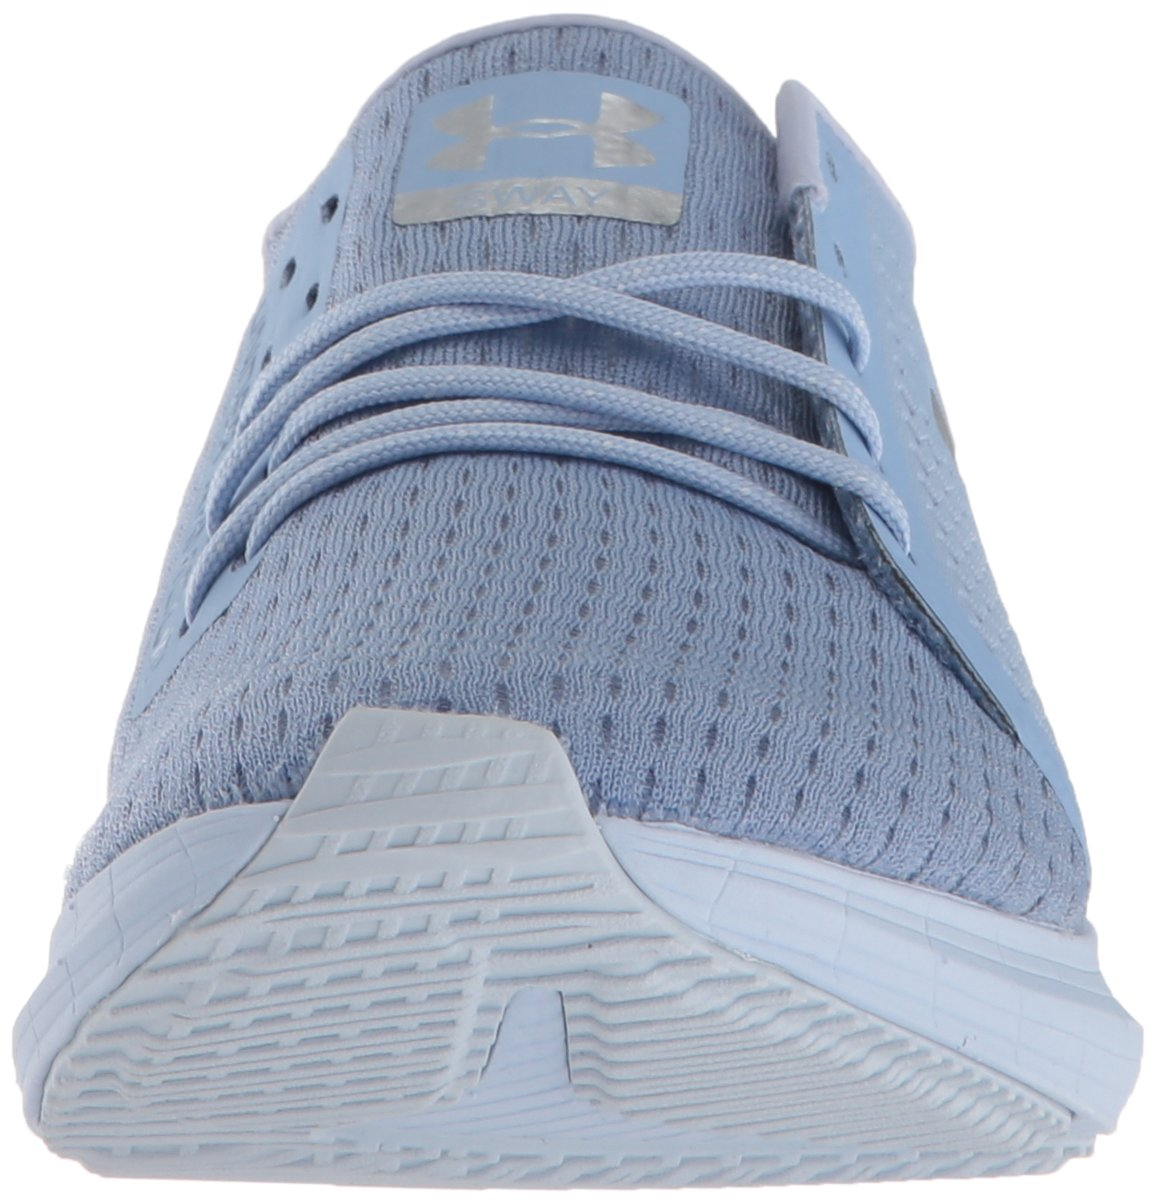 Under Armour US|Chambray Women's Sway Running Shoe B071HN2ZMX 10 M US|Chambray Armour Blue (400)/Oxford Blue 2ff2ee